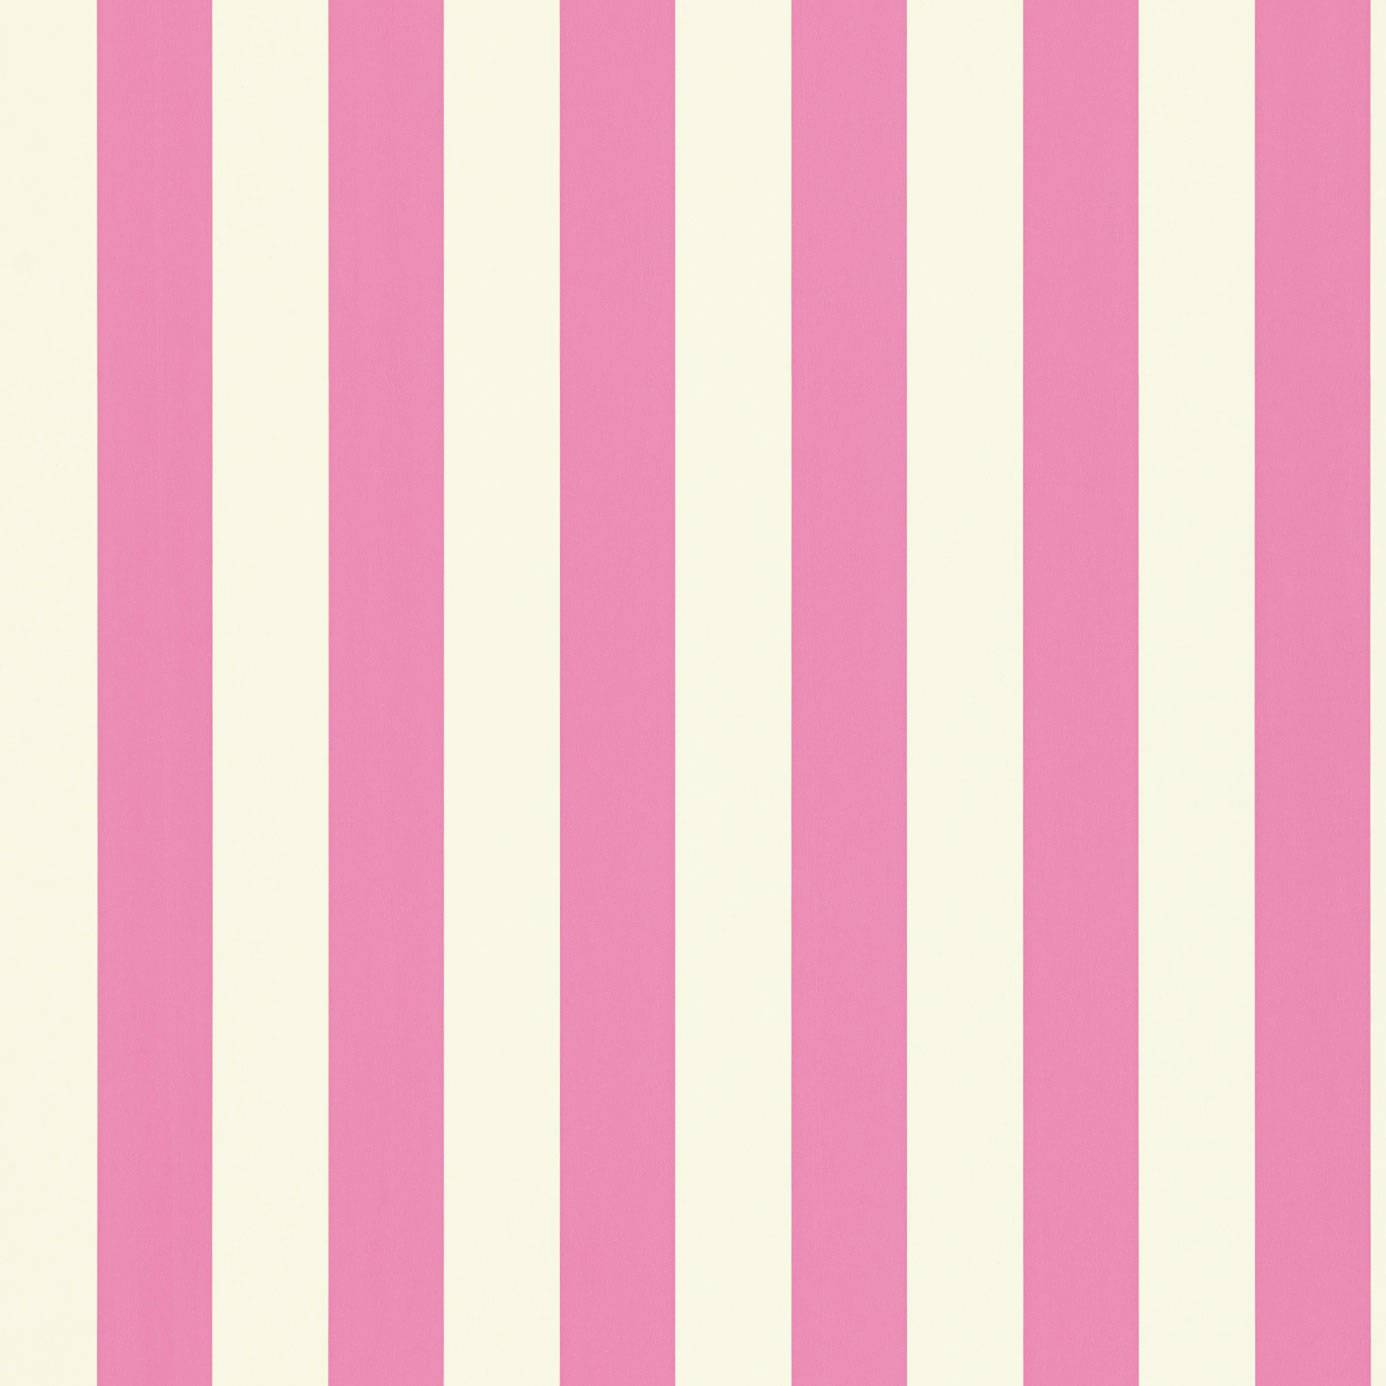 Red And White Striped Wallpaper Wallpapersafari